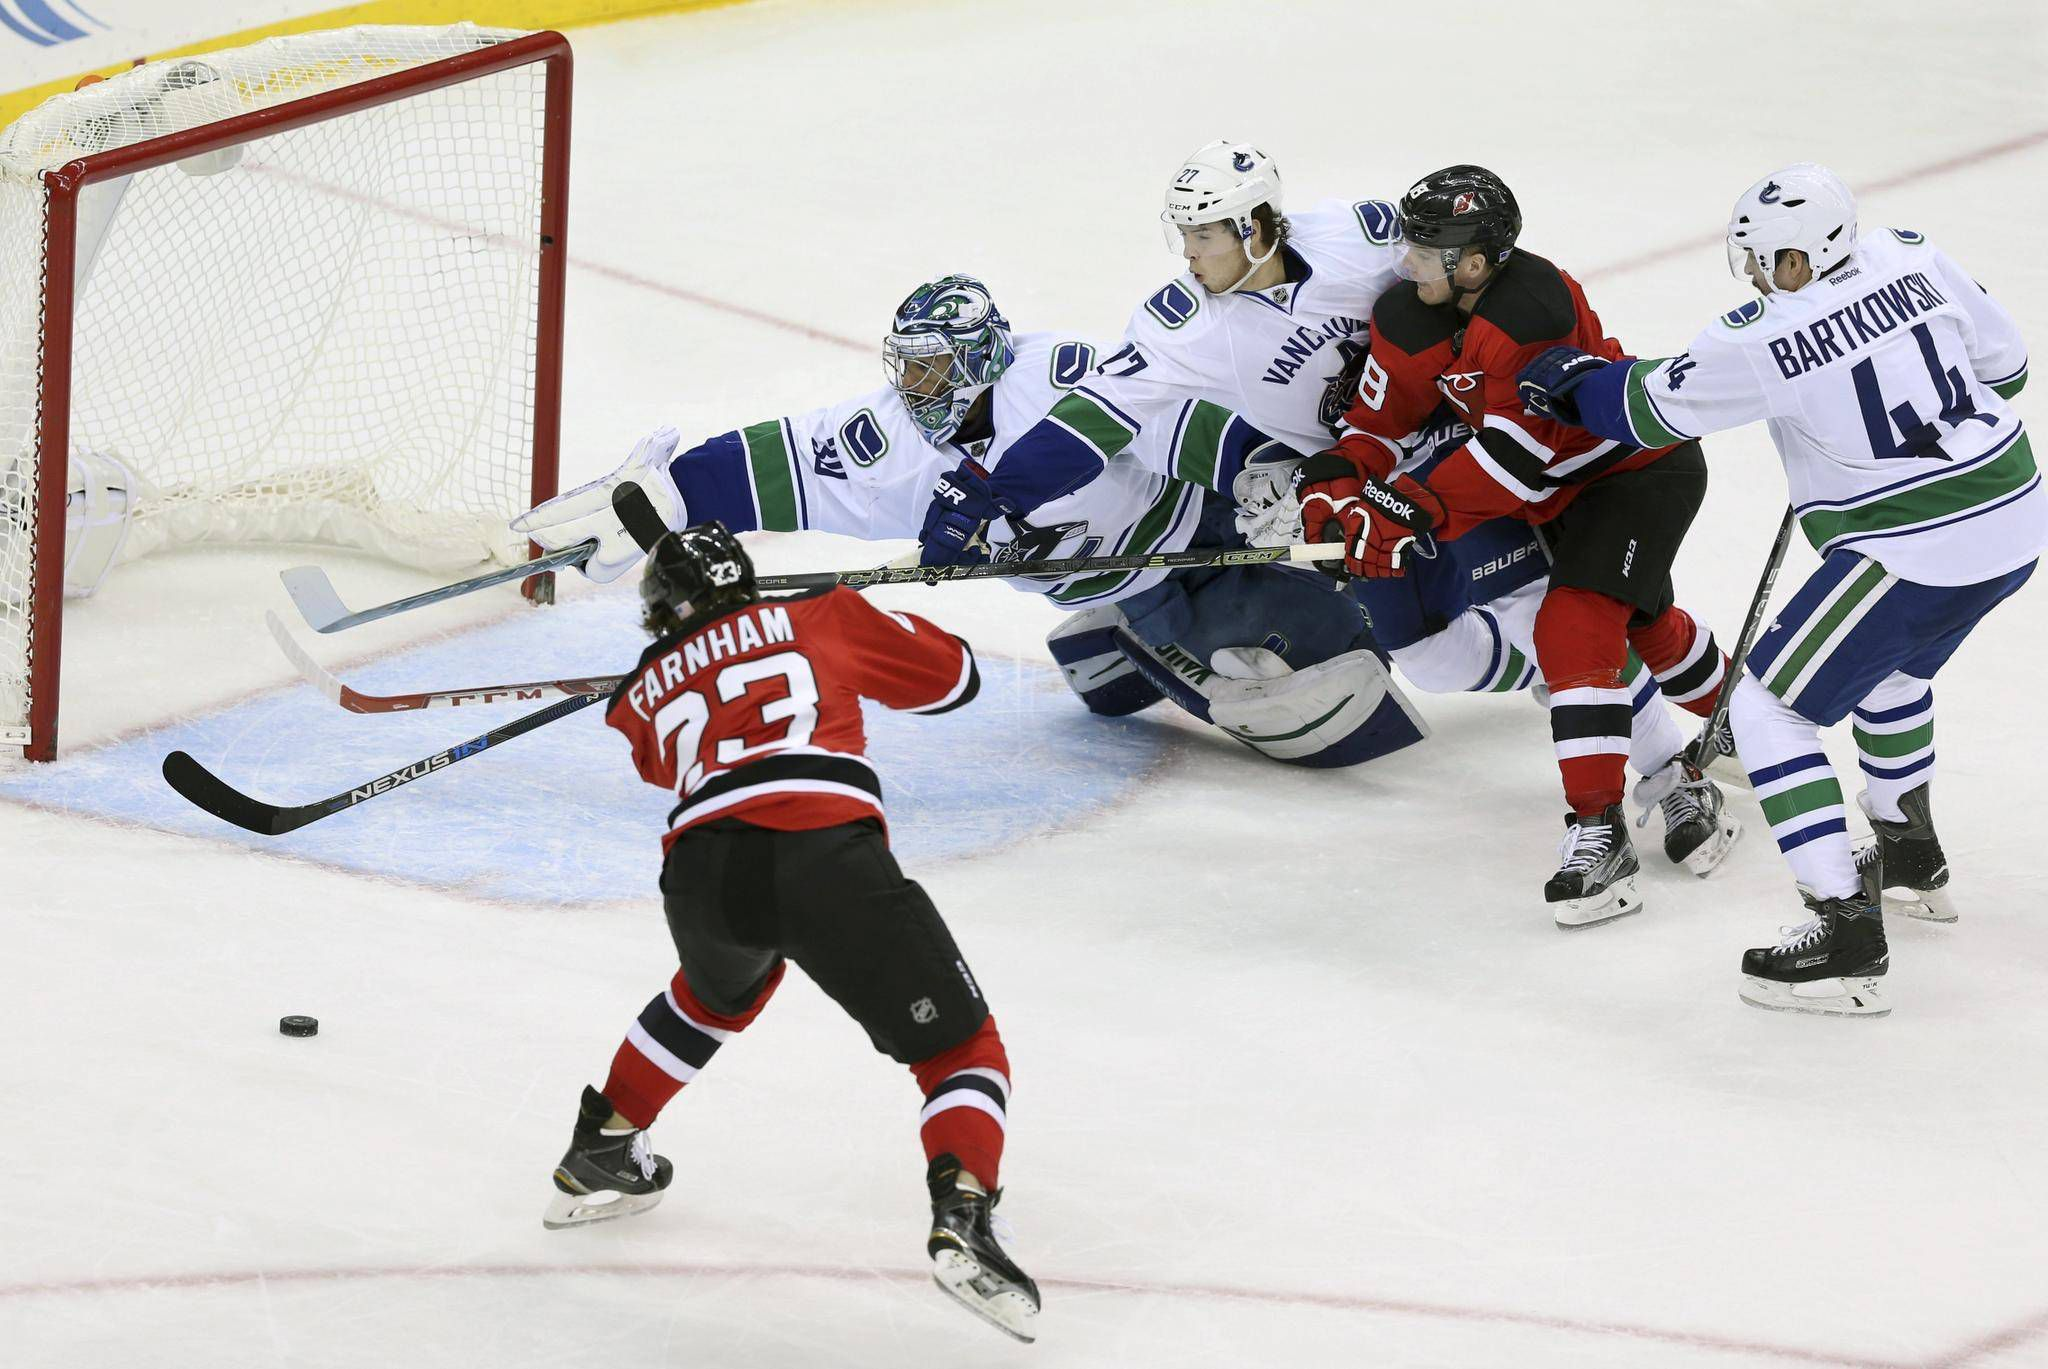 Kyle Palmieri scores in OT and Devils overcome Canucks rally